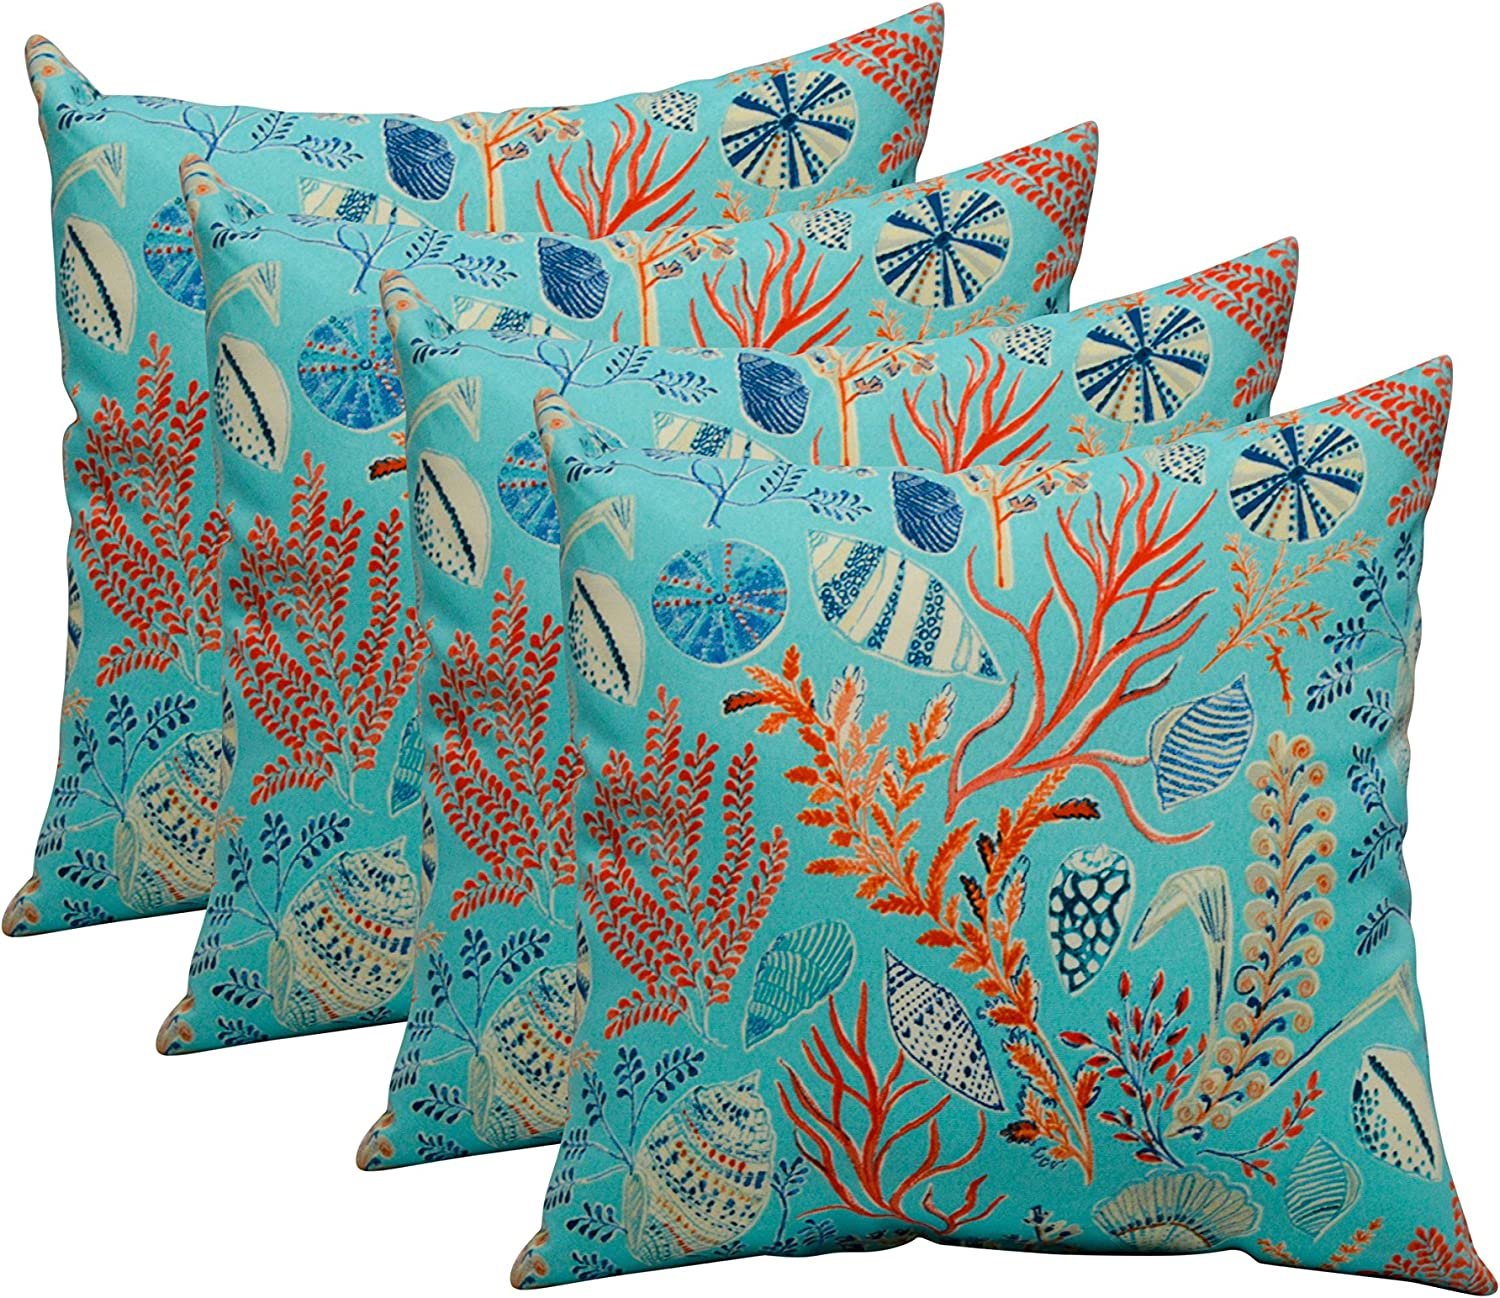 RSH DECOR Set of 4 in Outdoor 17 Square Decorative Throw Pillows Blue, Peach, White, Cream, Orange, Coral, Red Ocean Life Coastal Coral Reef